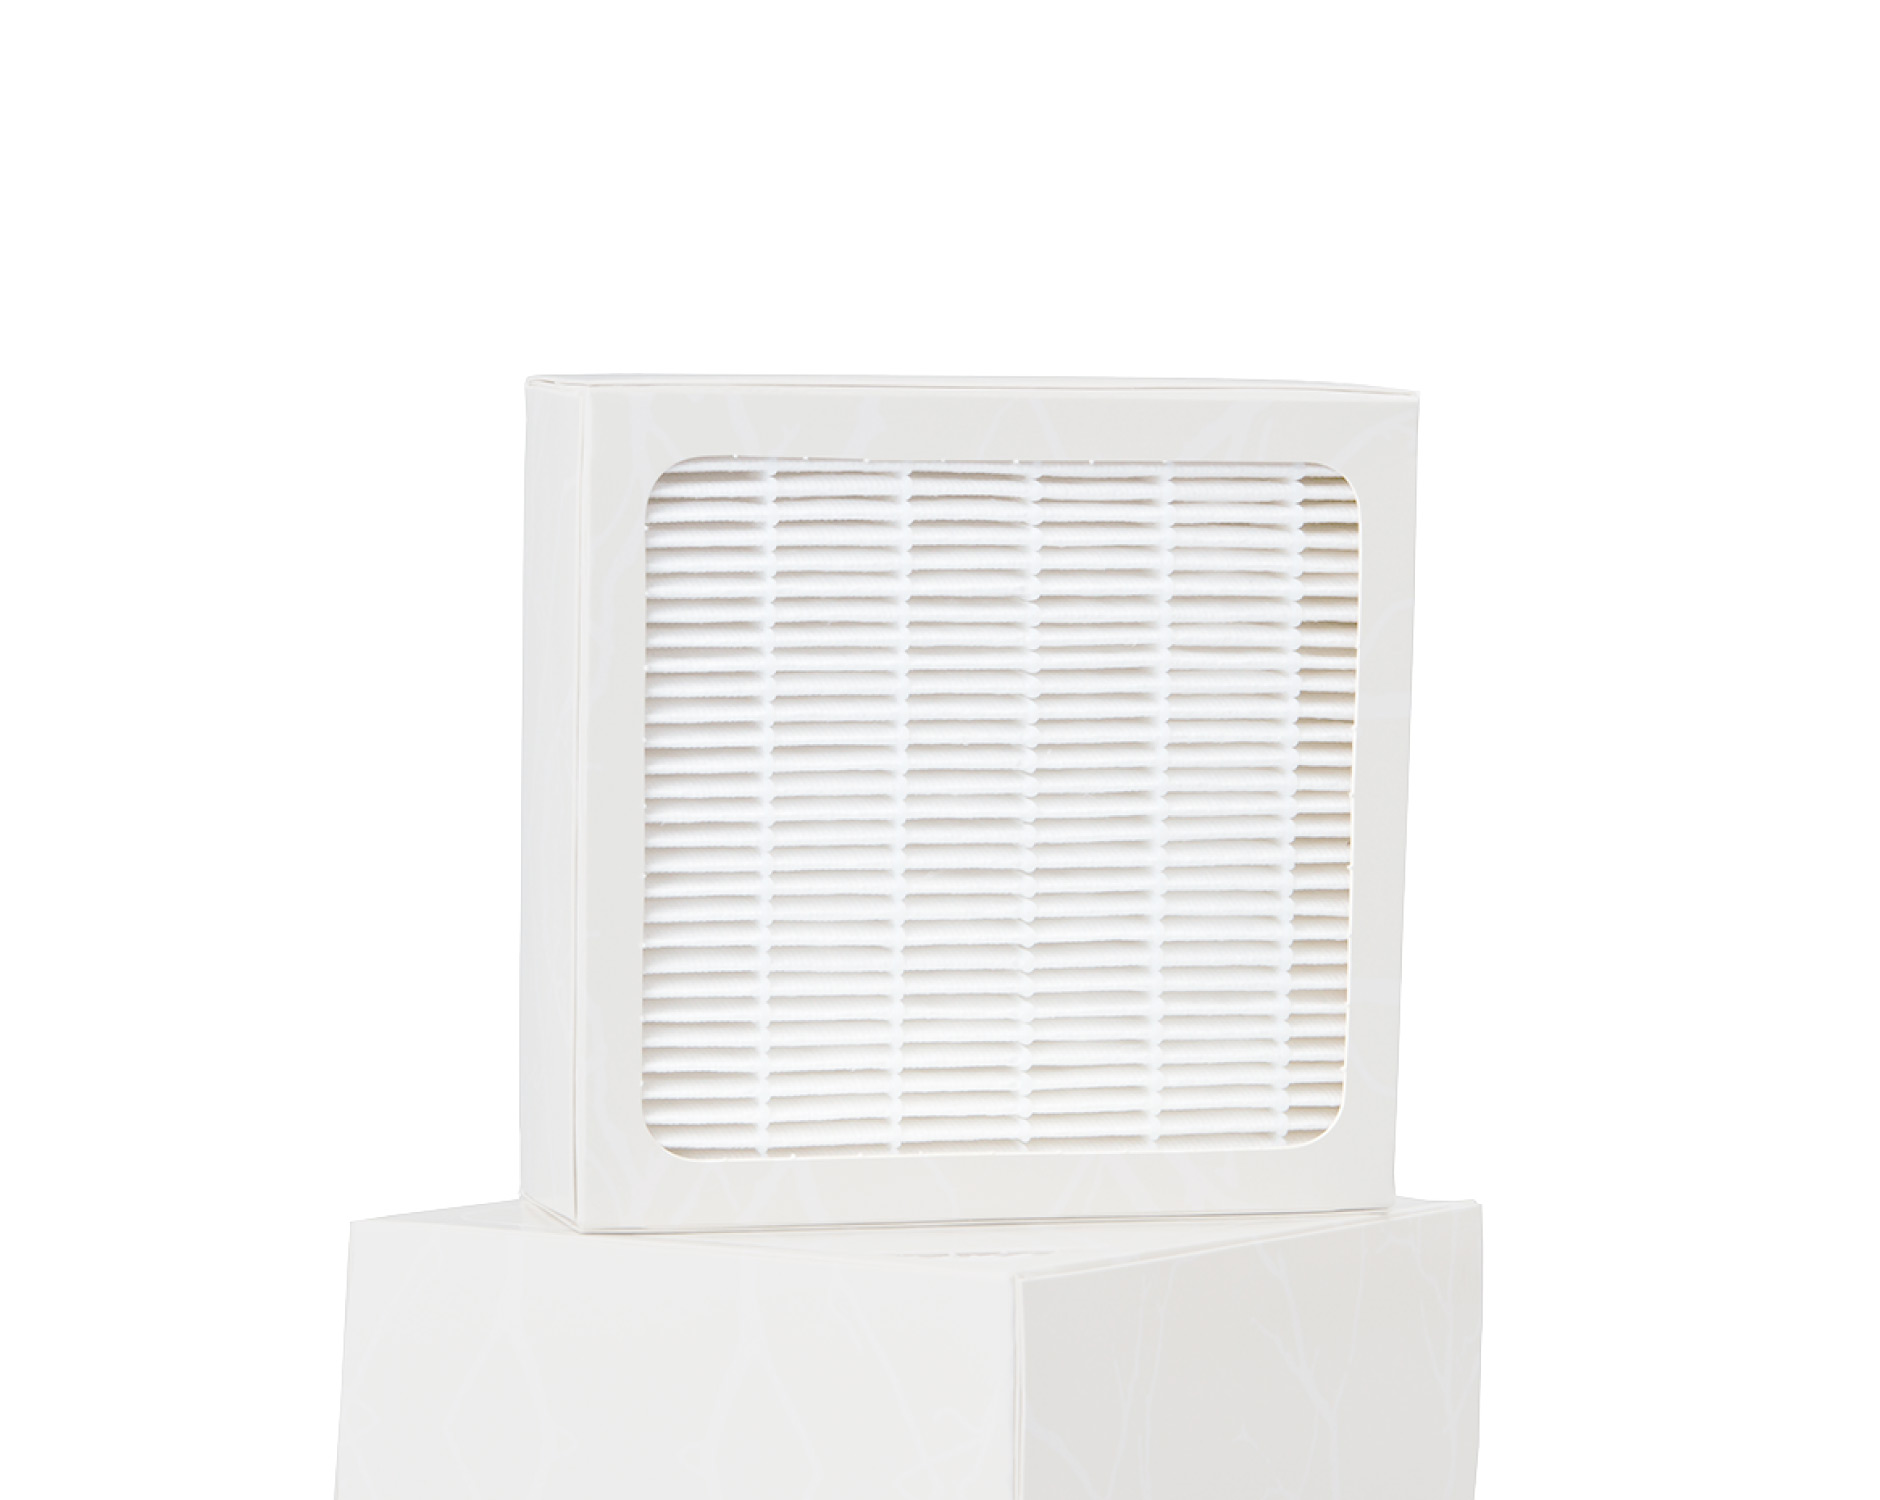 Blueair mini Outlet Filter Set